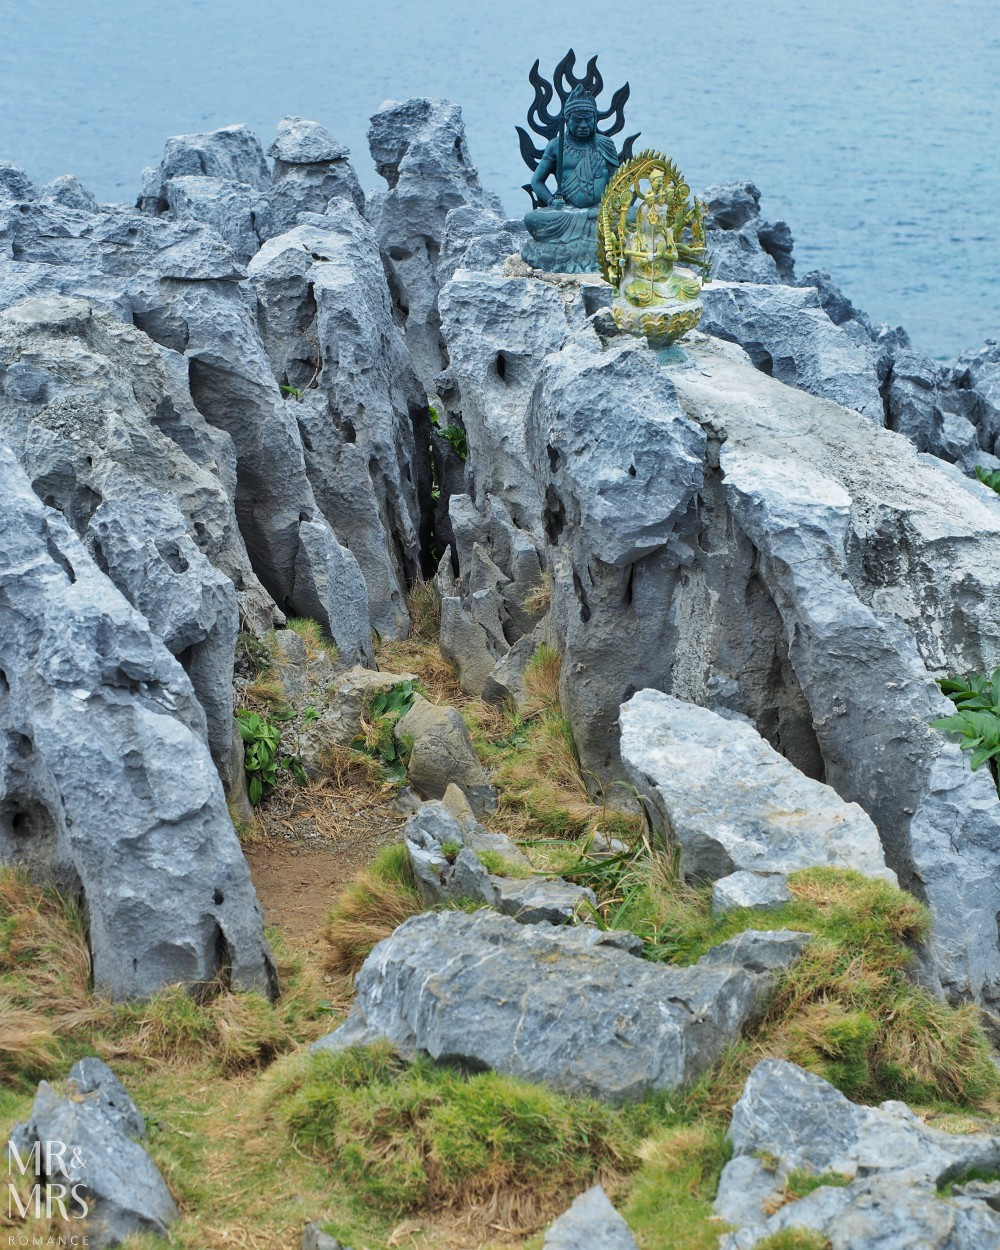 Power Spots, Okinawa, Japan - Mr & Mrs Romance - shrines on rocks